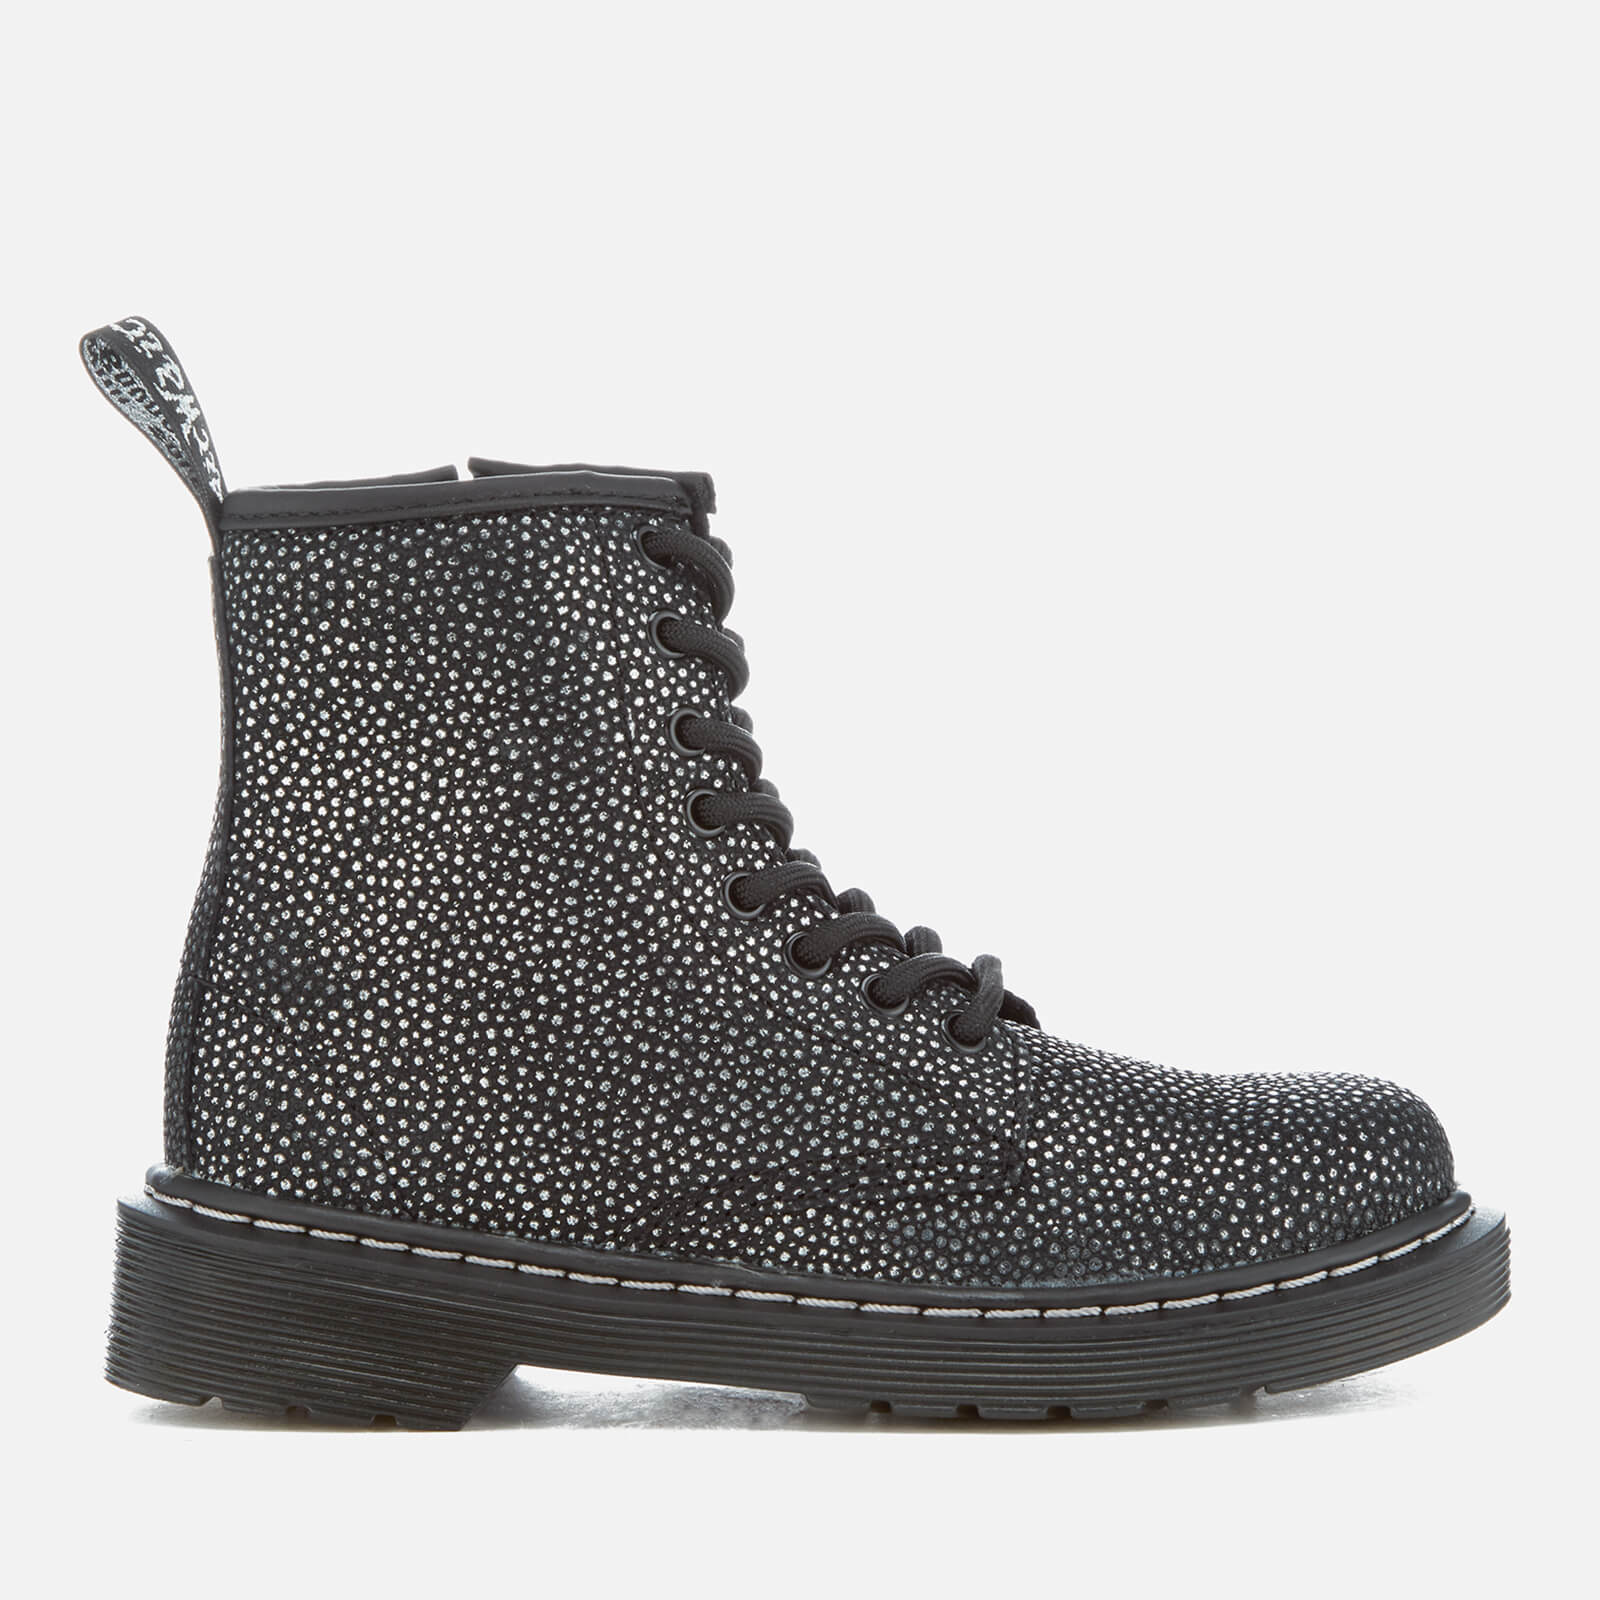 53a7ae36c65 Dr. Martens Kids' Delaney Pebble Metallic 8-Eye Lace Up Boots - Black/Silver